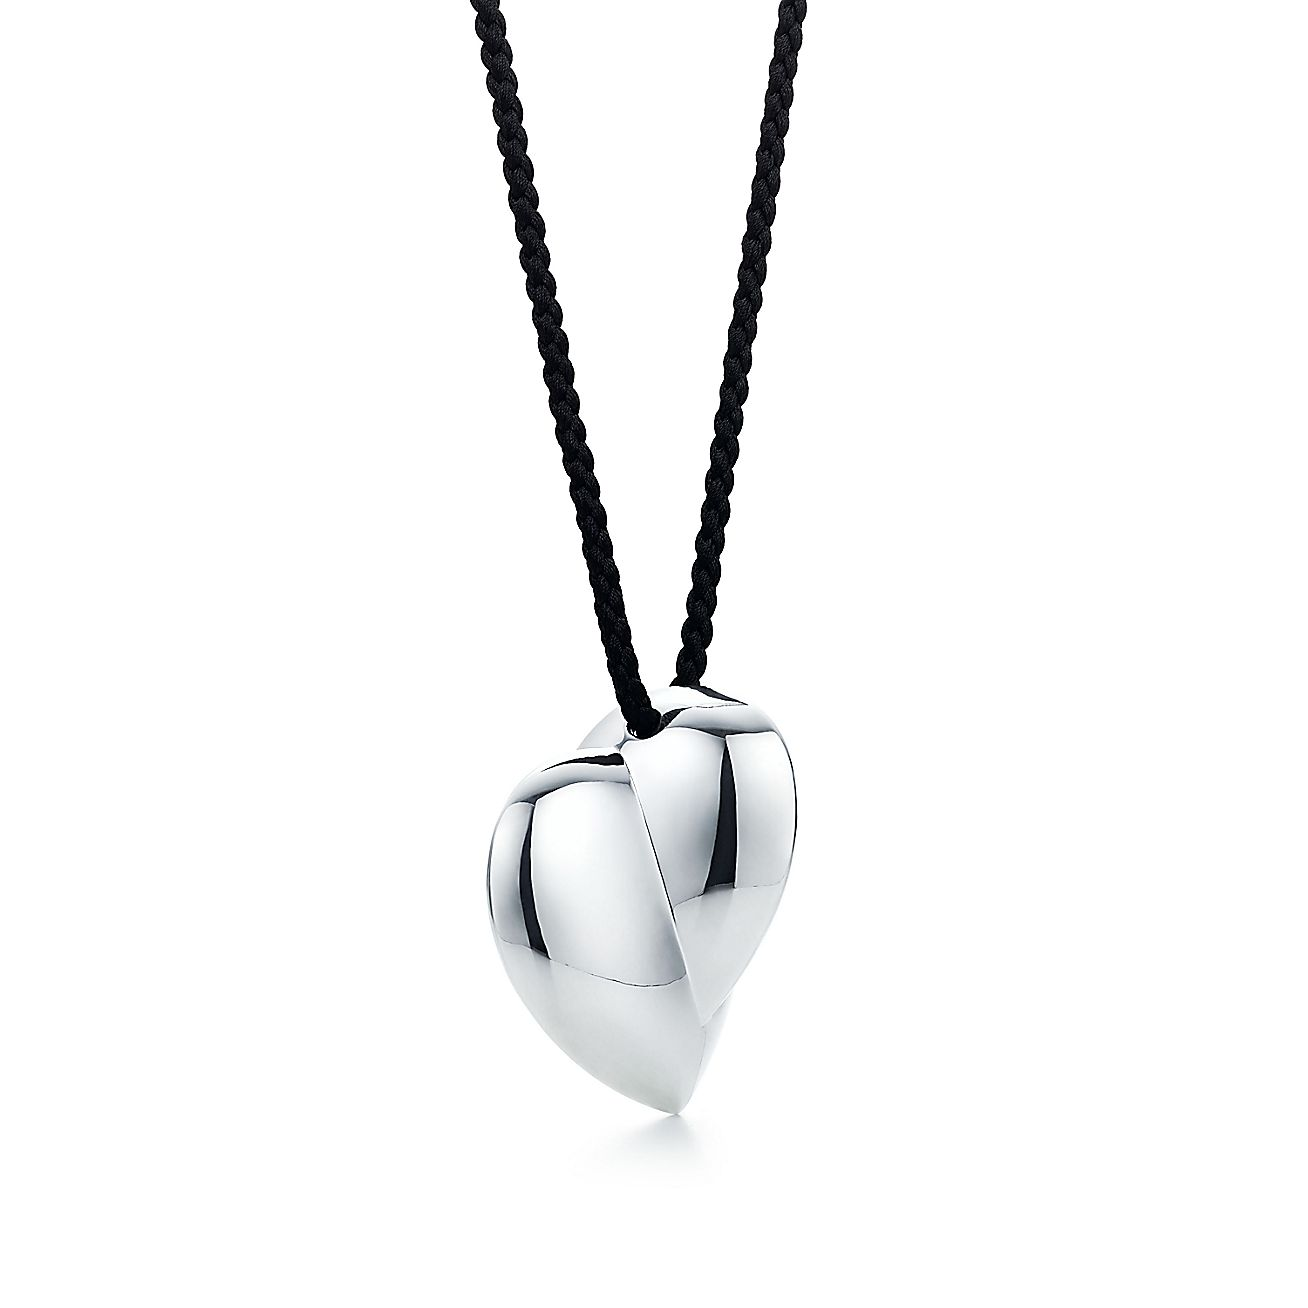 Frank Gehry Hearts Pendant In Sterling Silver On A Black